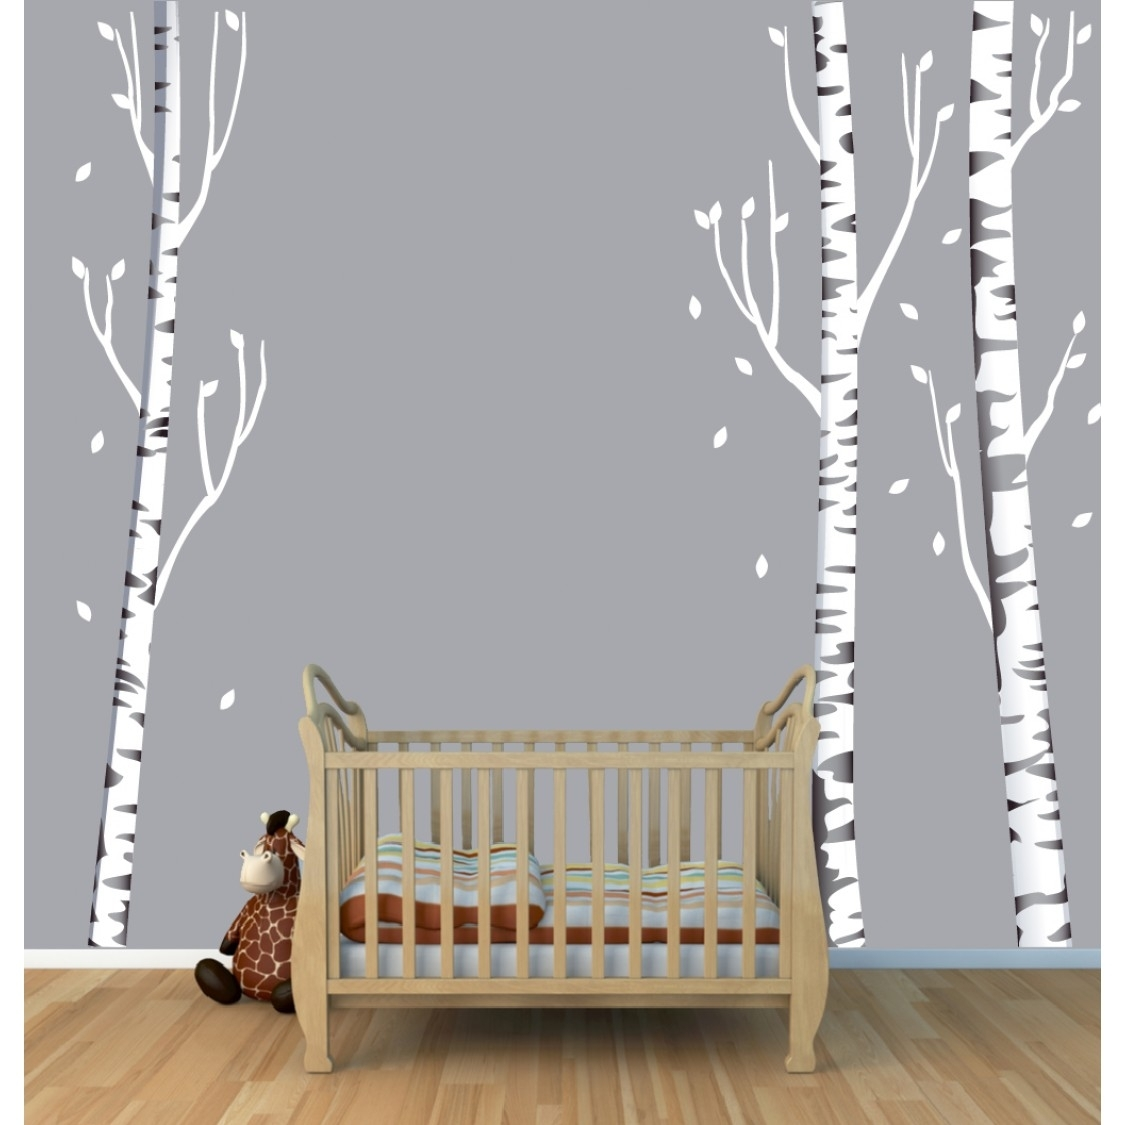 Wall Art Designs: Best Picks Birch Trees Wall Art For Awesome With Regard To Most Current Fabric Tree Wall Art (View 8 of 15)